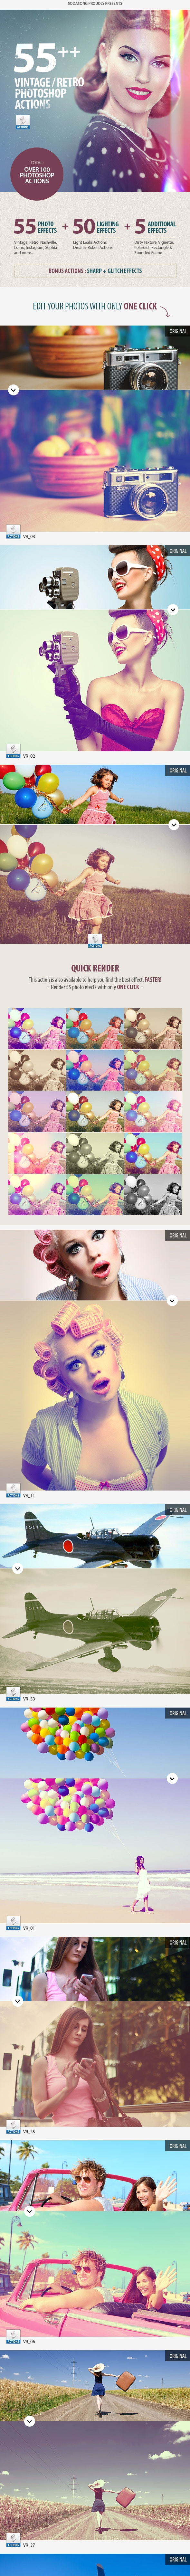 55+ Vintage / Retro Effects - Photoshop Actions - Photo Effects Actions